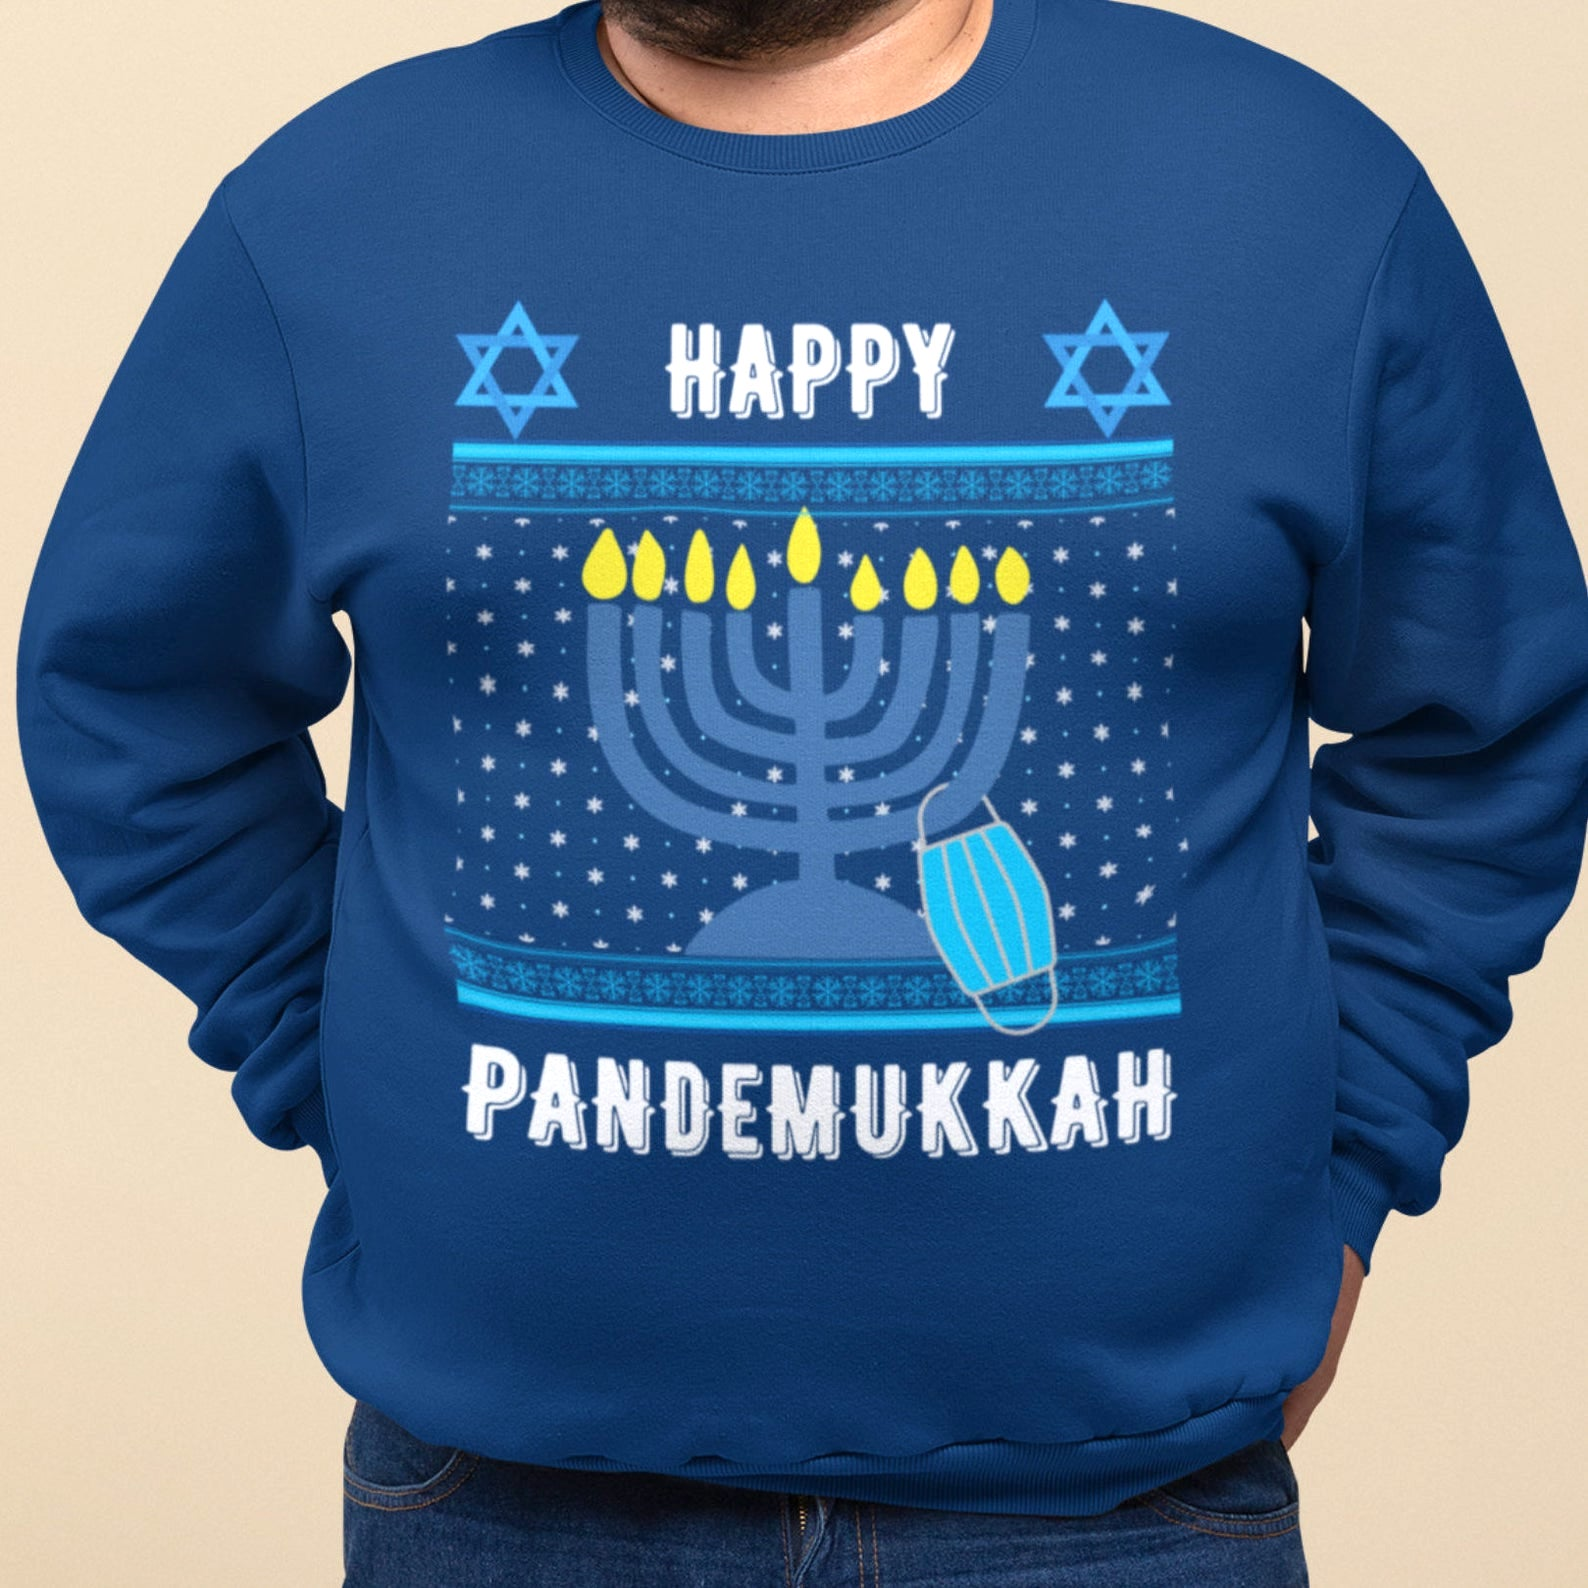 Best Hanukkah gifts from small businesses: Happy Pandemmukah sweatshirt from CornerThree Designs